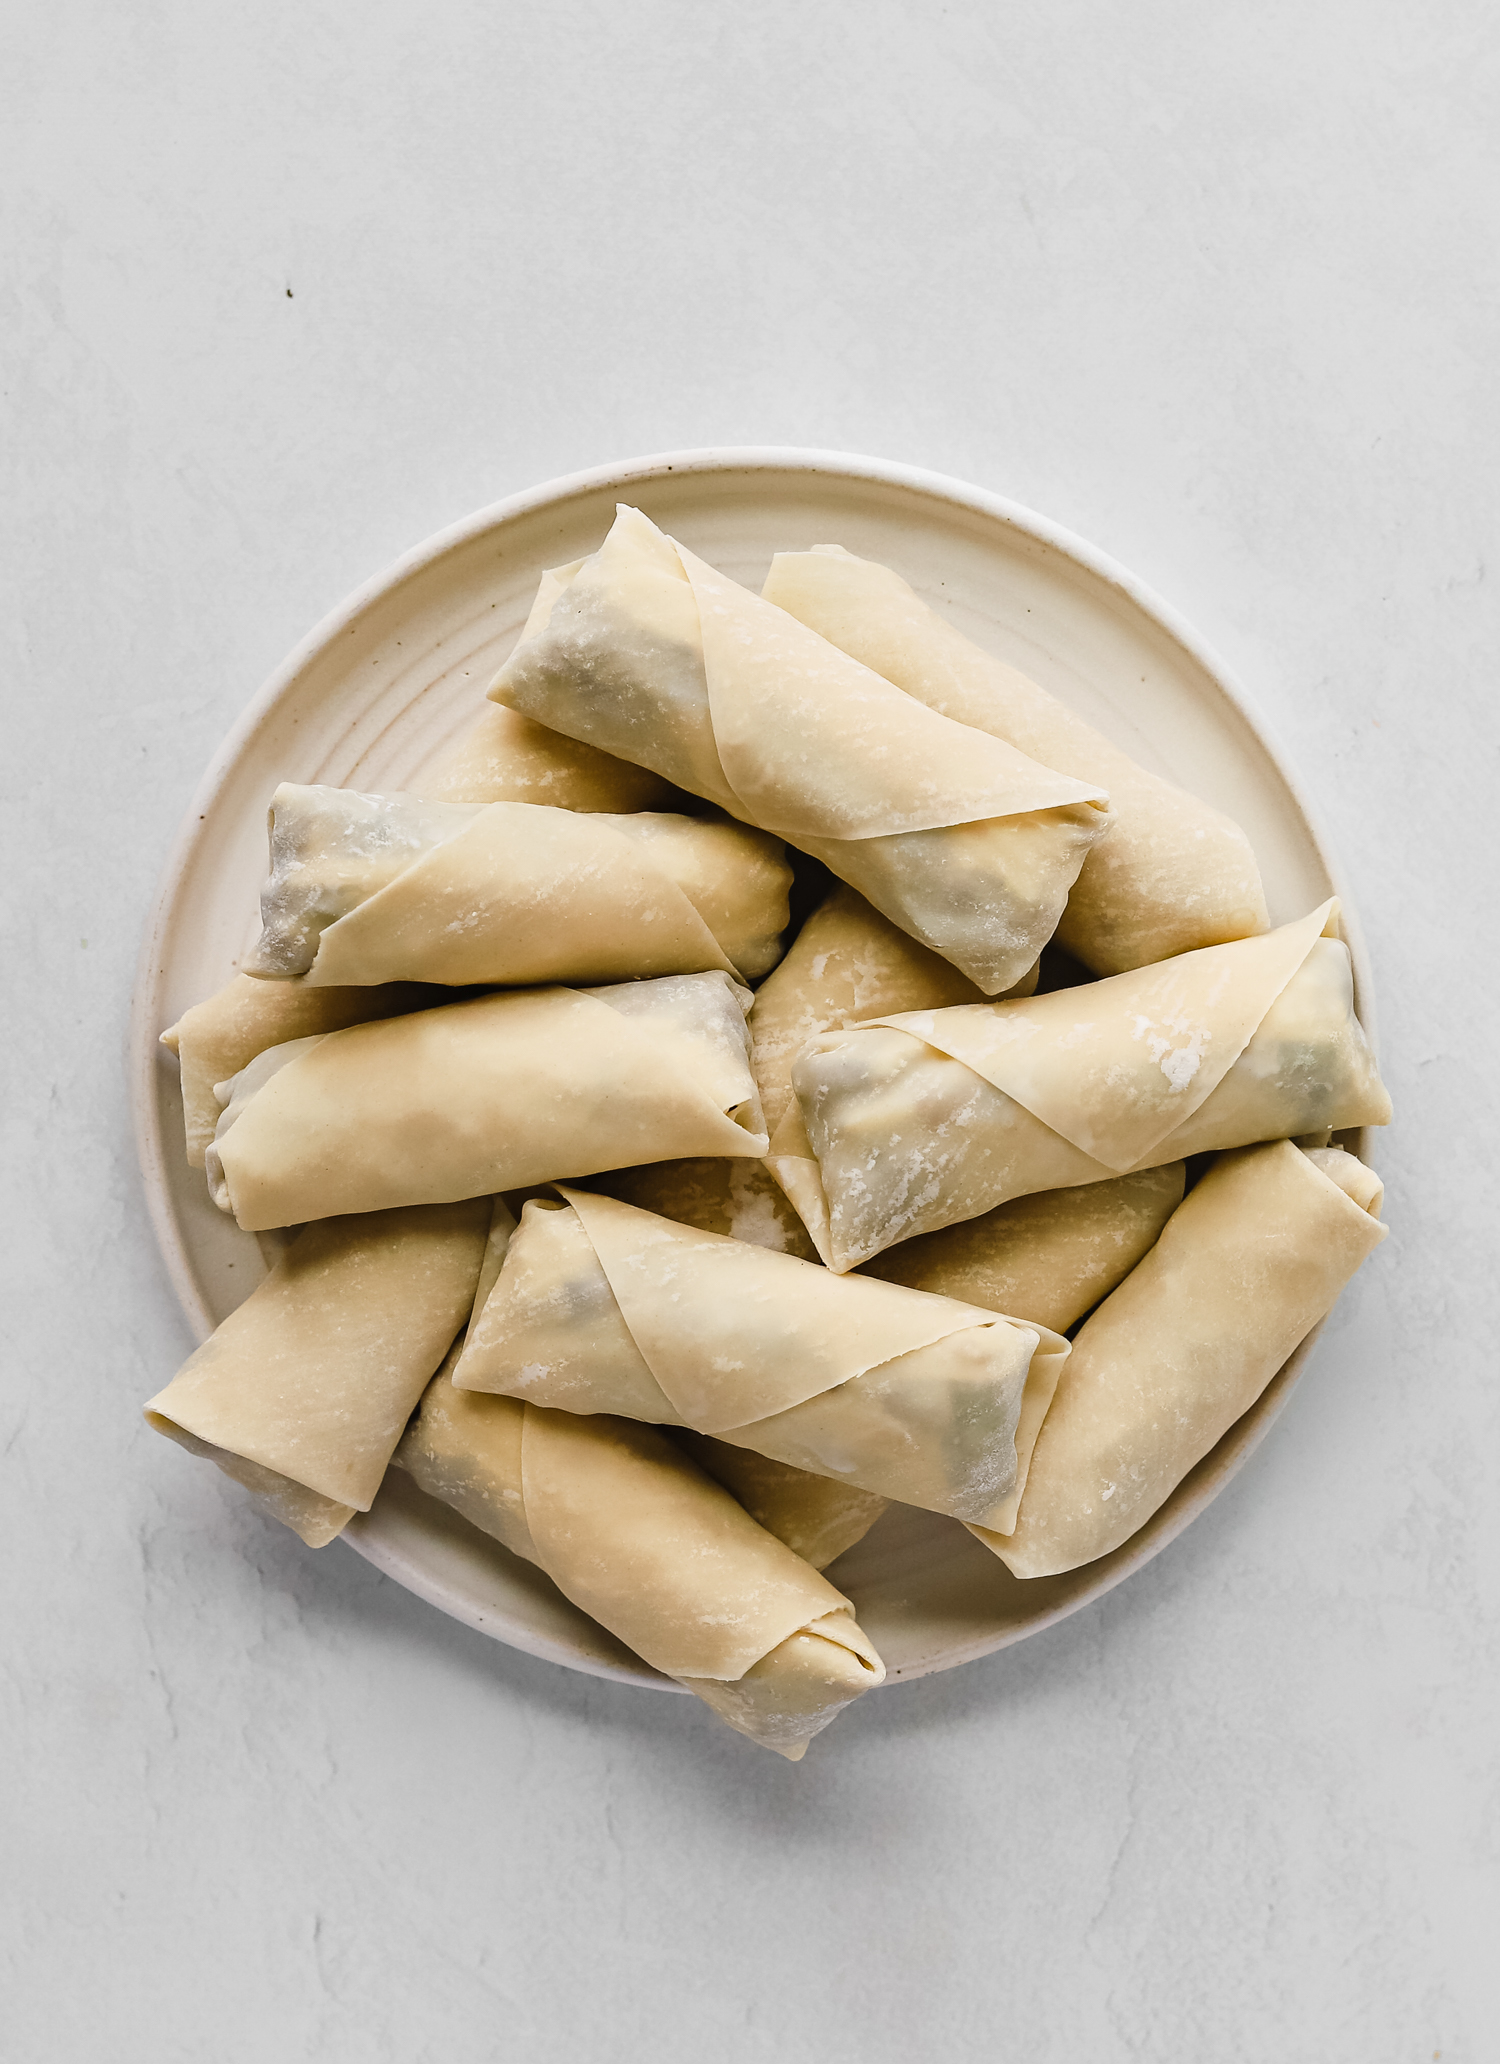 Freshly wrapped unbaked philly cheesesteak egg rolls on a white plate